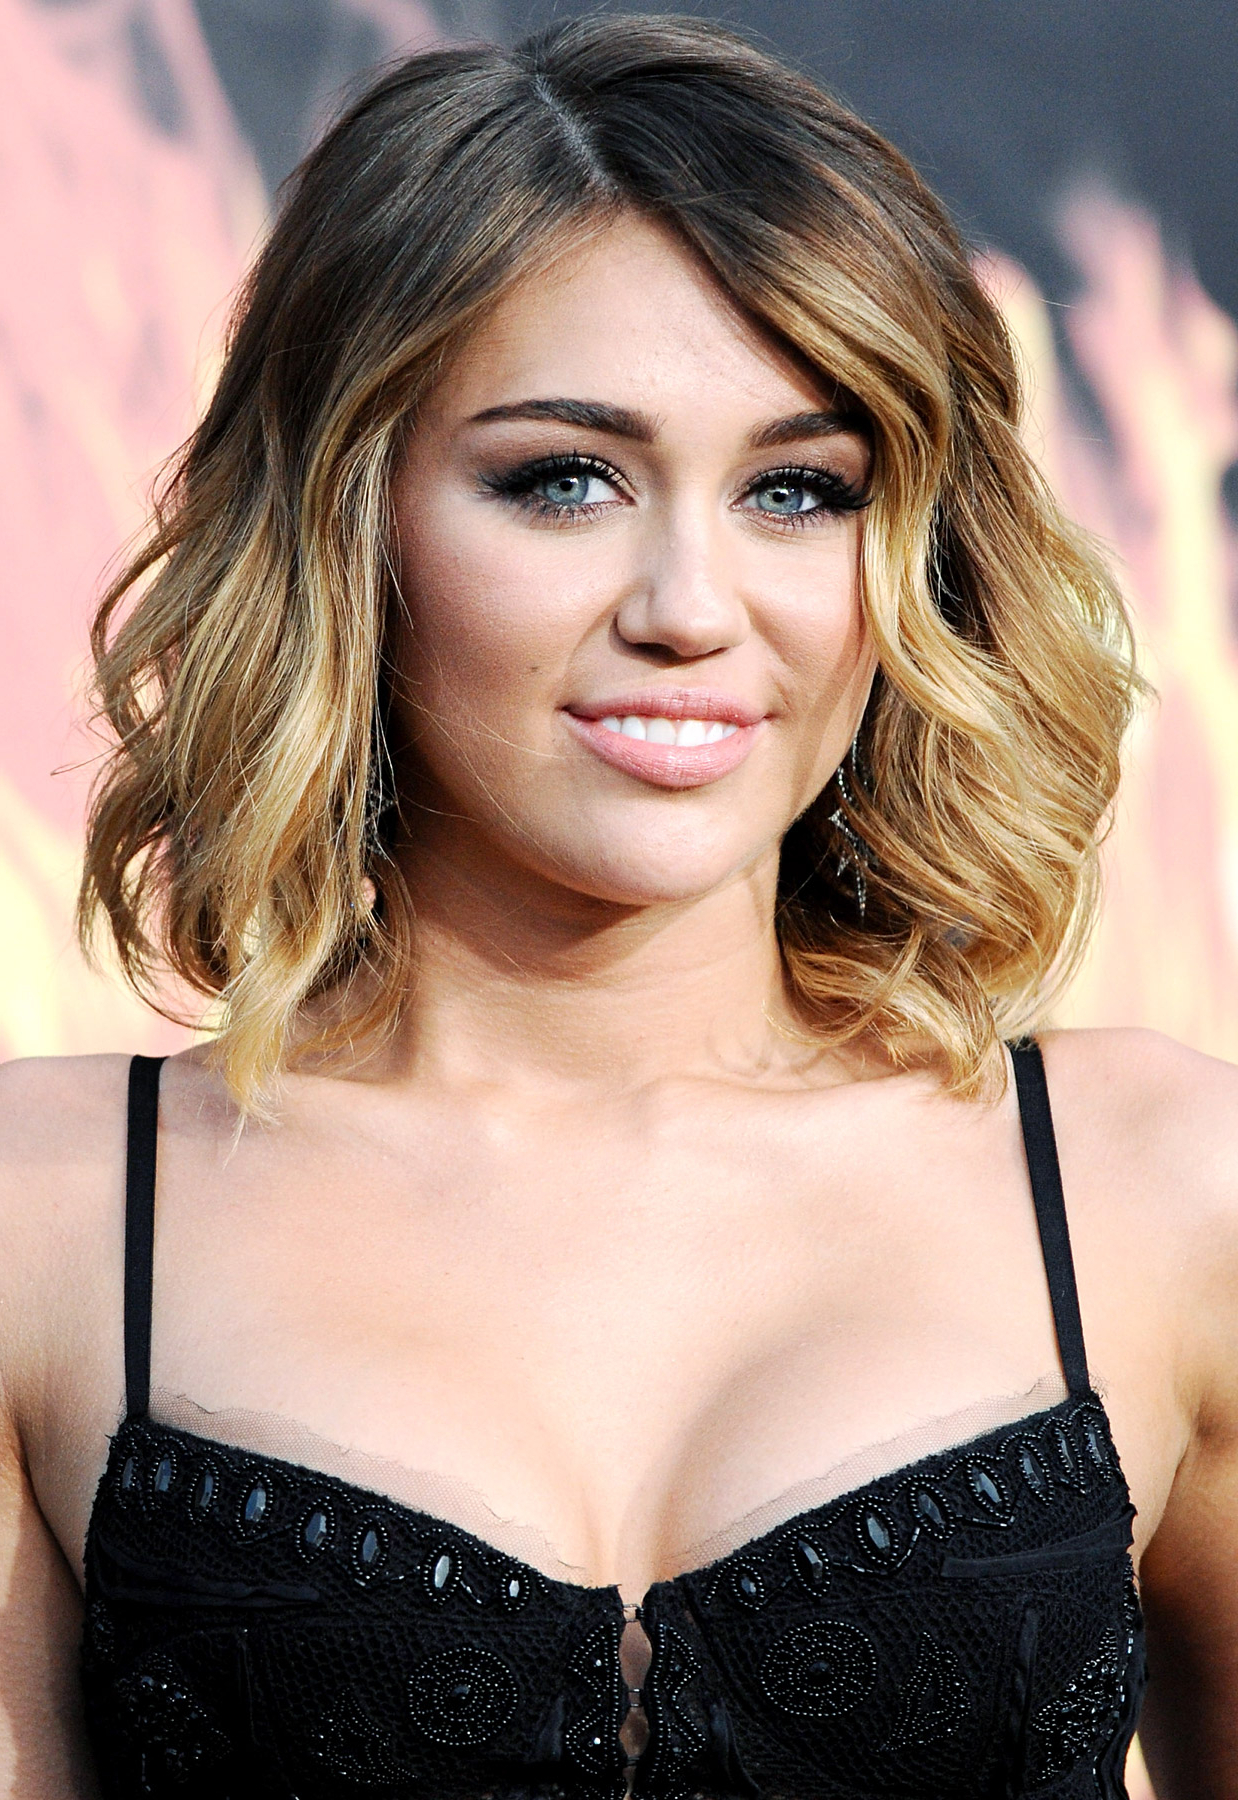 2015 Miley Cyrus Hairstyles Hairstyle 2015 Pertaining To Famous Medium Haircuts Like Miley Cyrus (View 14 of 20)